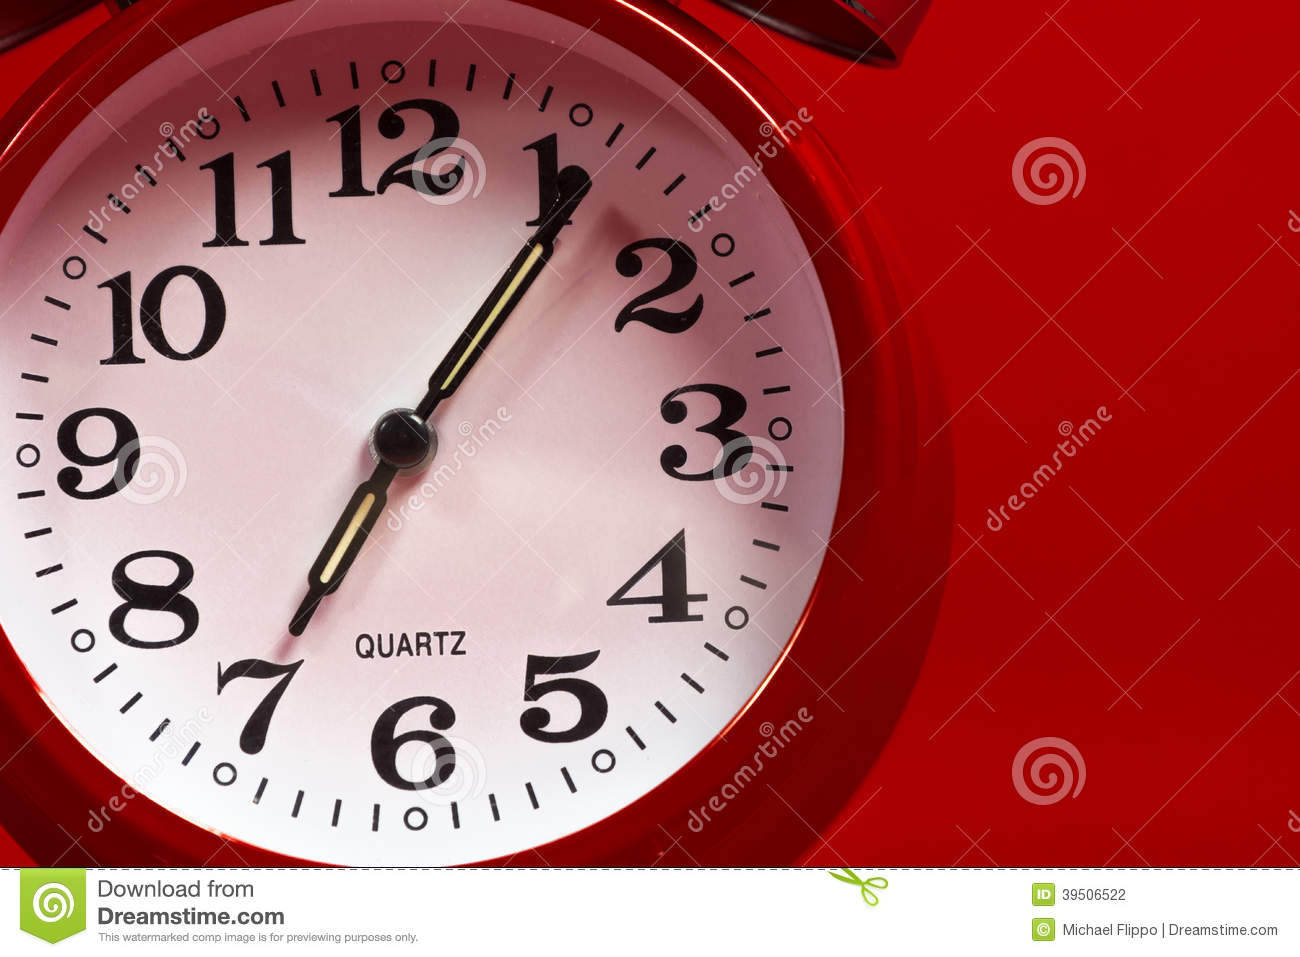 A red vintage alarm clock on a red background